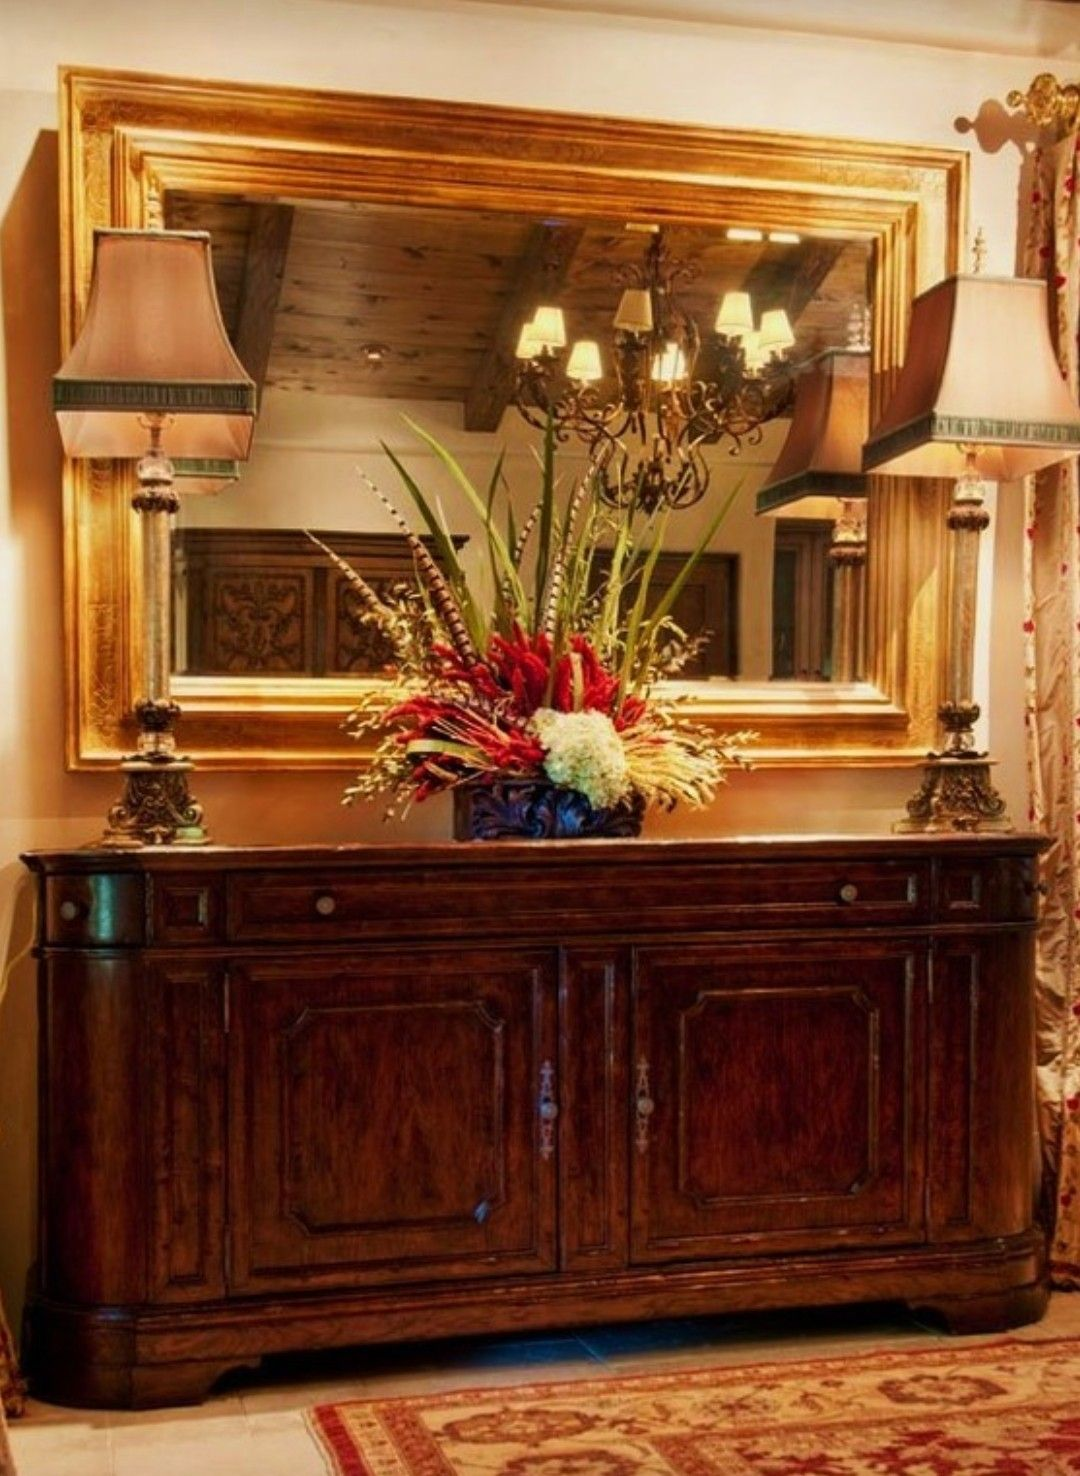 Small kitchen by Anh Nguyen | Buffet decor, Buffet table ...